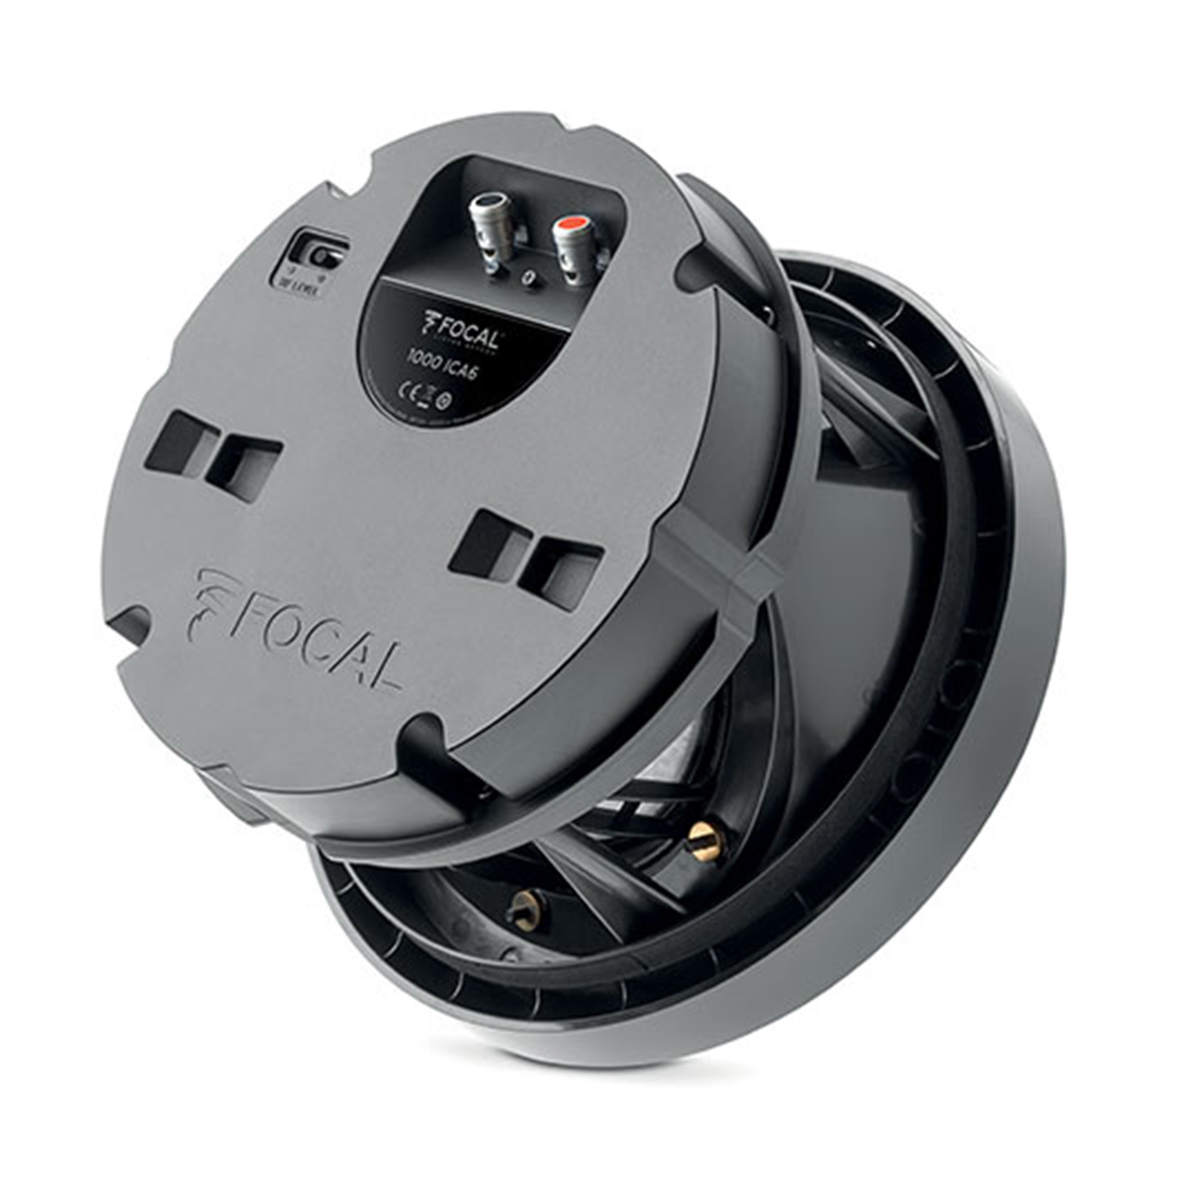 Focal 1000ica6 Rear Life Style Store